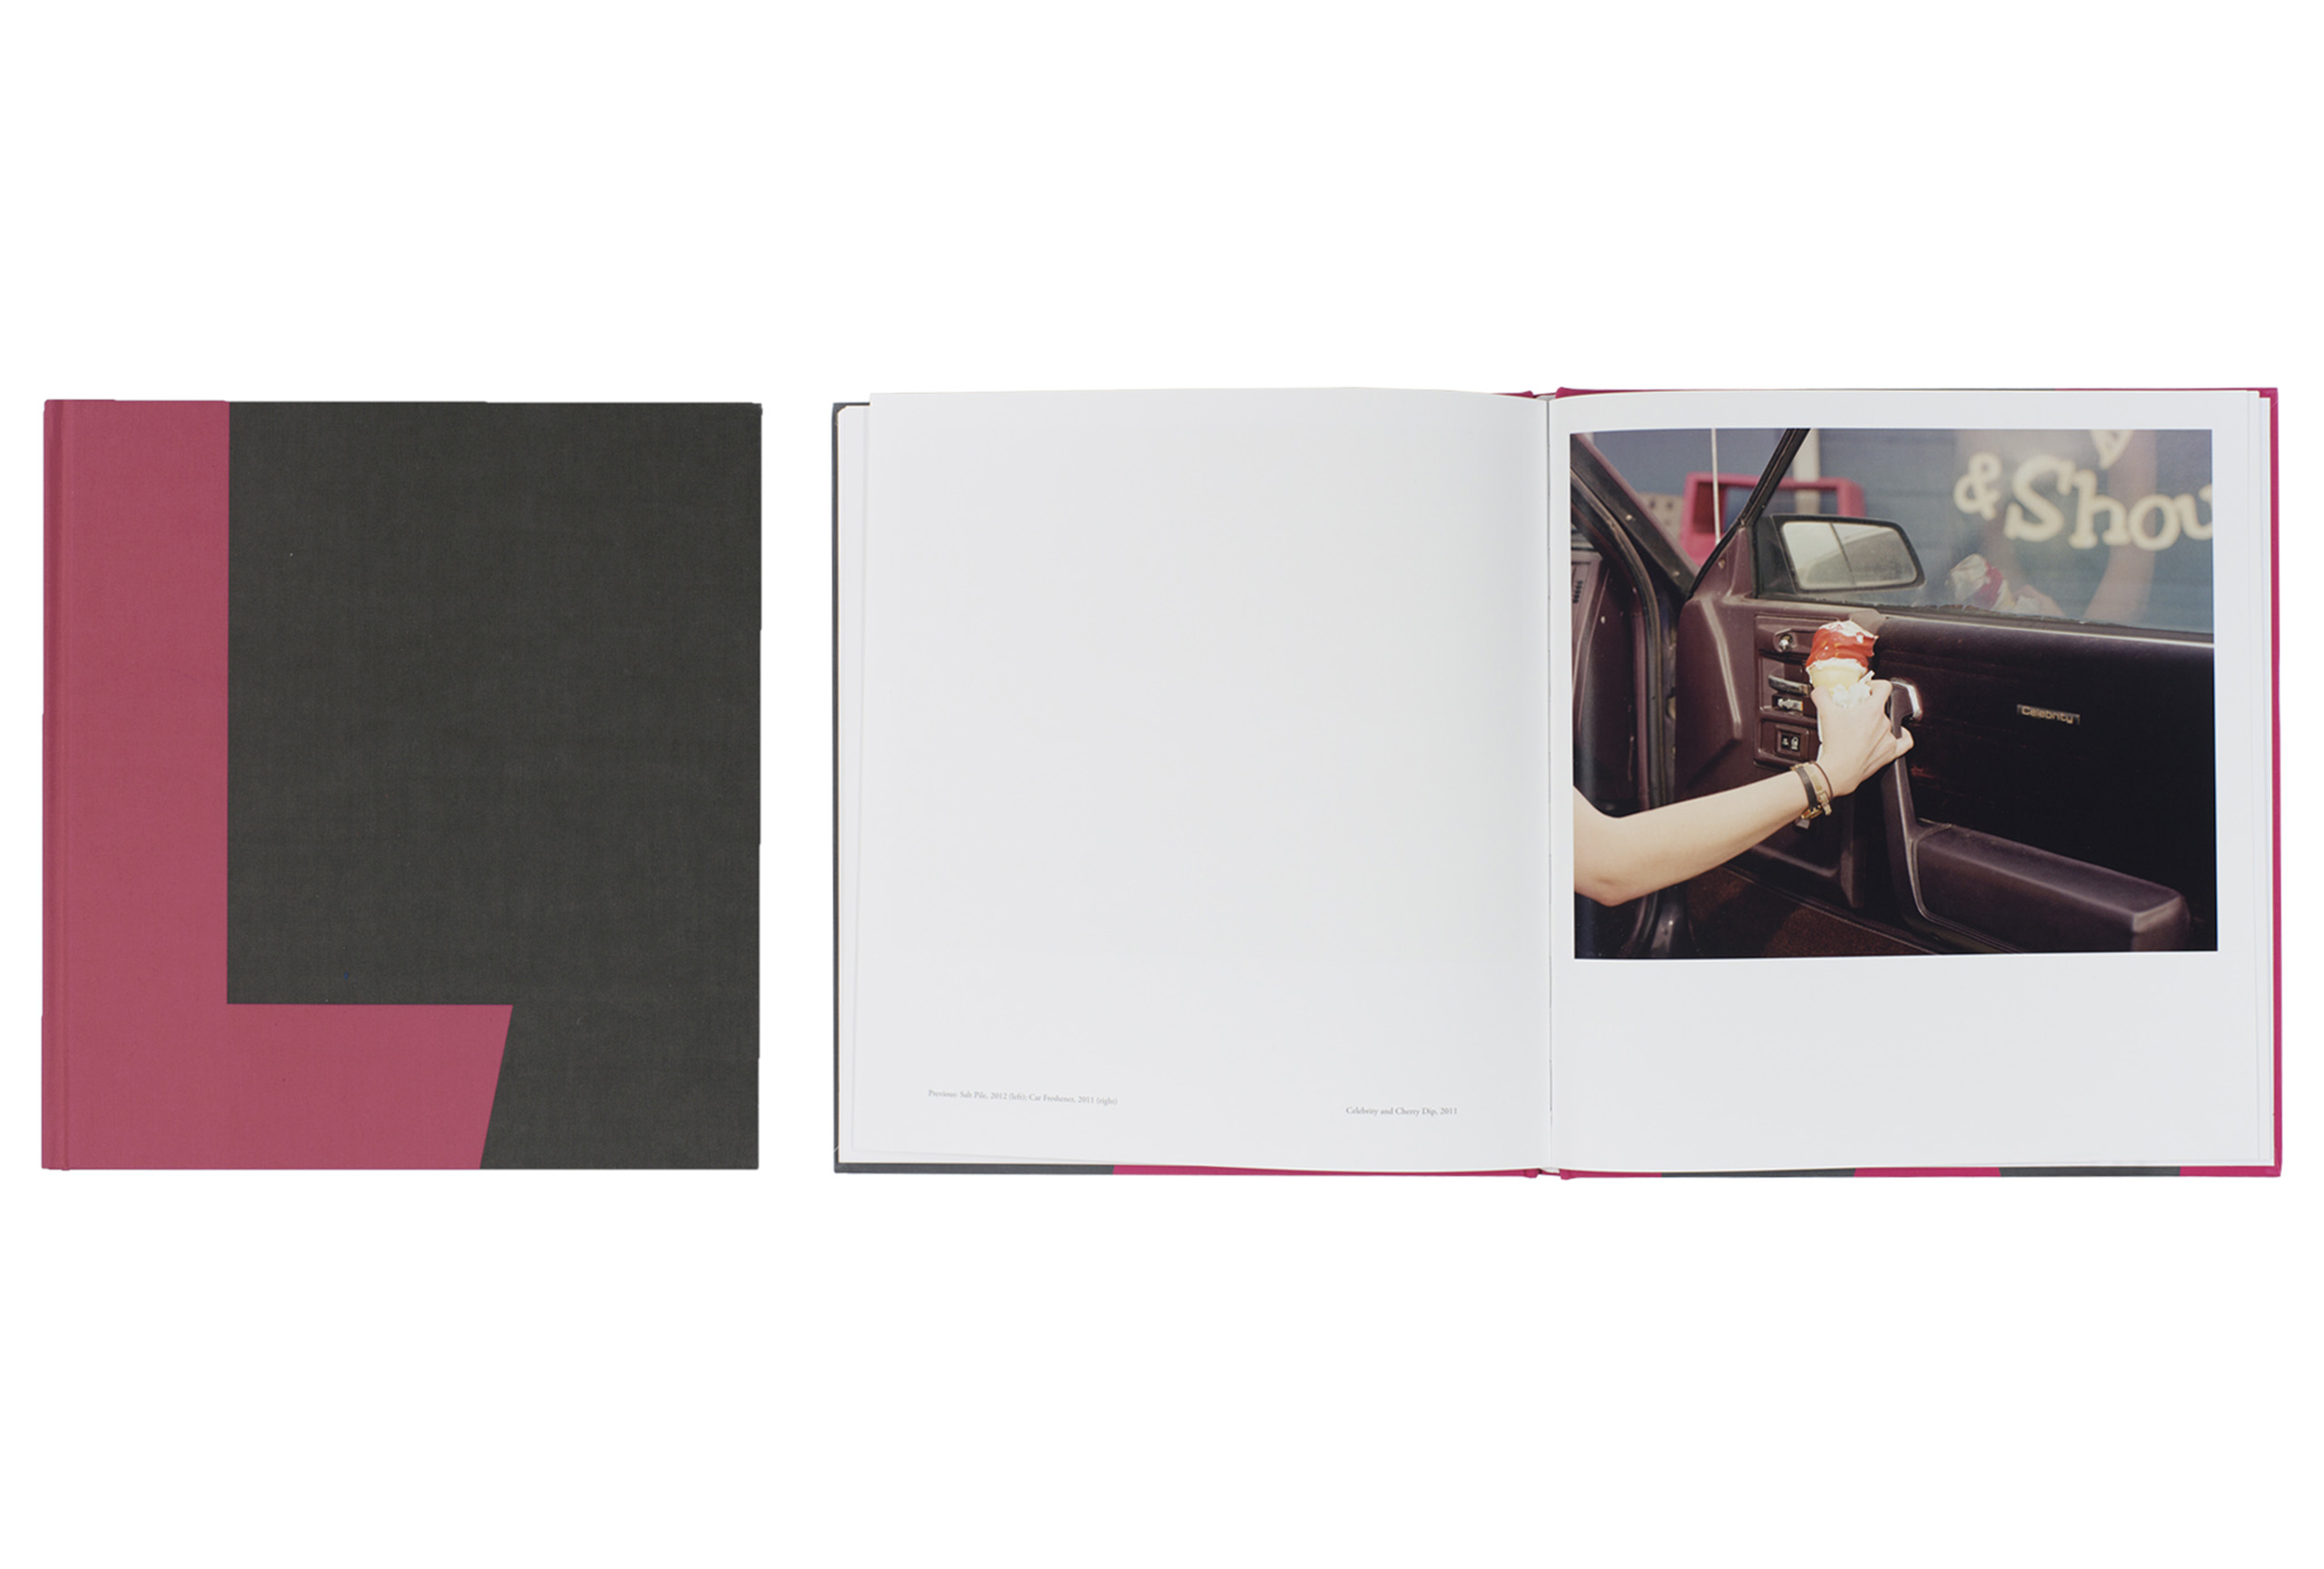 Landmark by J. W. Fisher and J. T. Leonard, published by Daylight. Short-listed title for First PhotoBook.